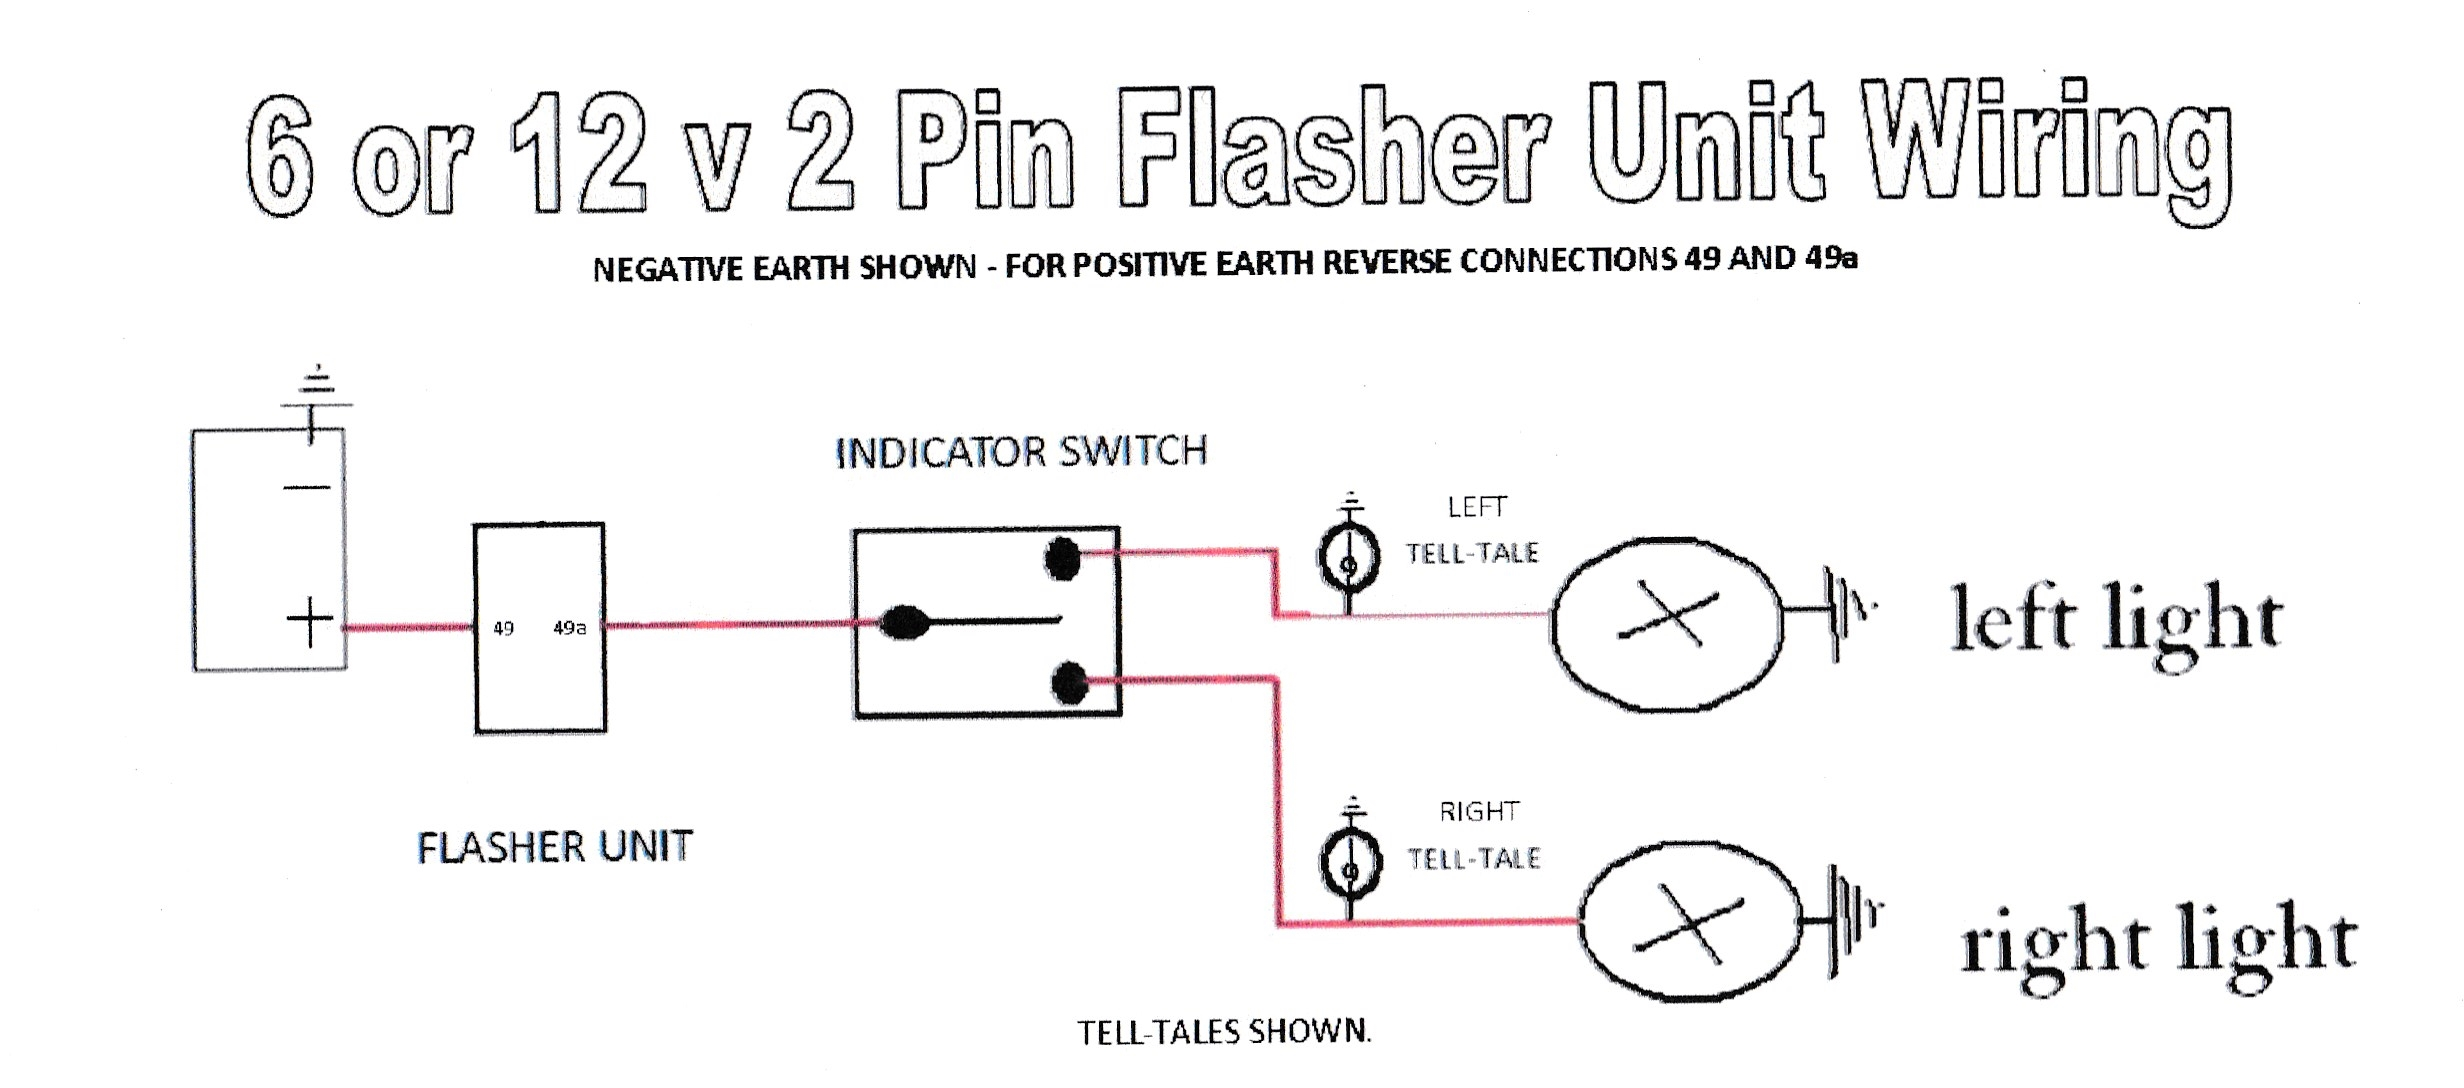 IMG_20150323_0001_NEW 3 pin flasher unit wiring diagram 550 flasher wiring \u2022 wiring 4 way flasher wiring diagram at readyjetset.co